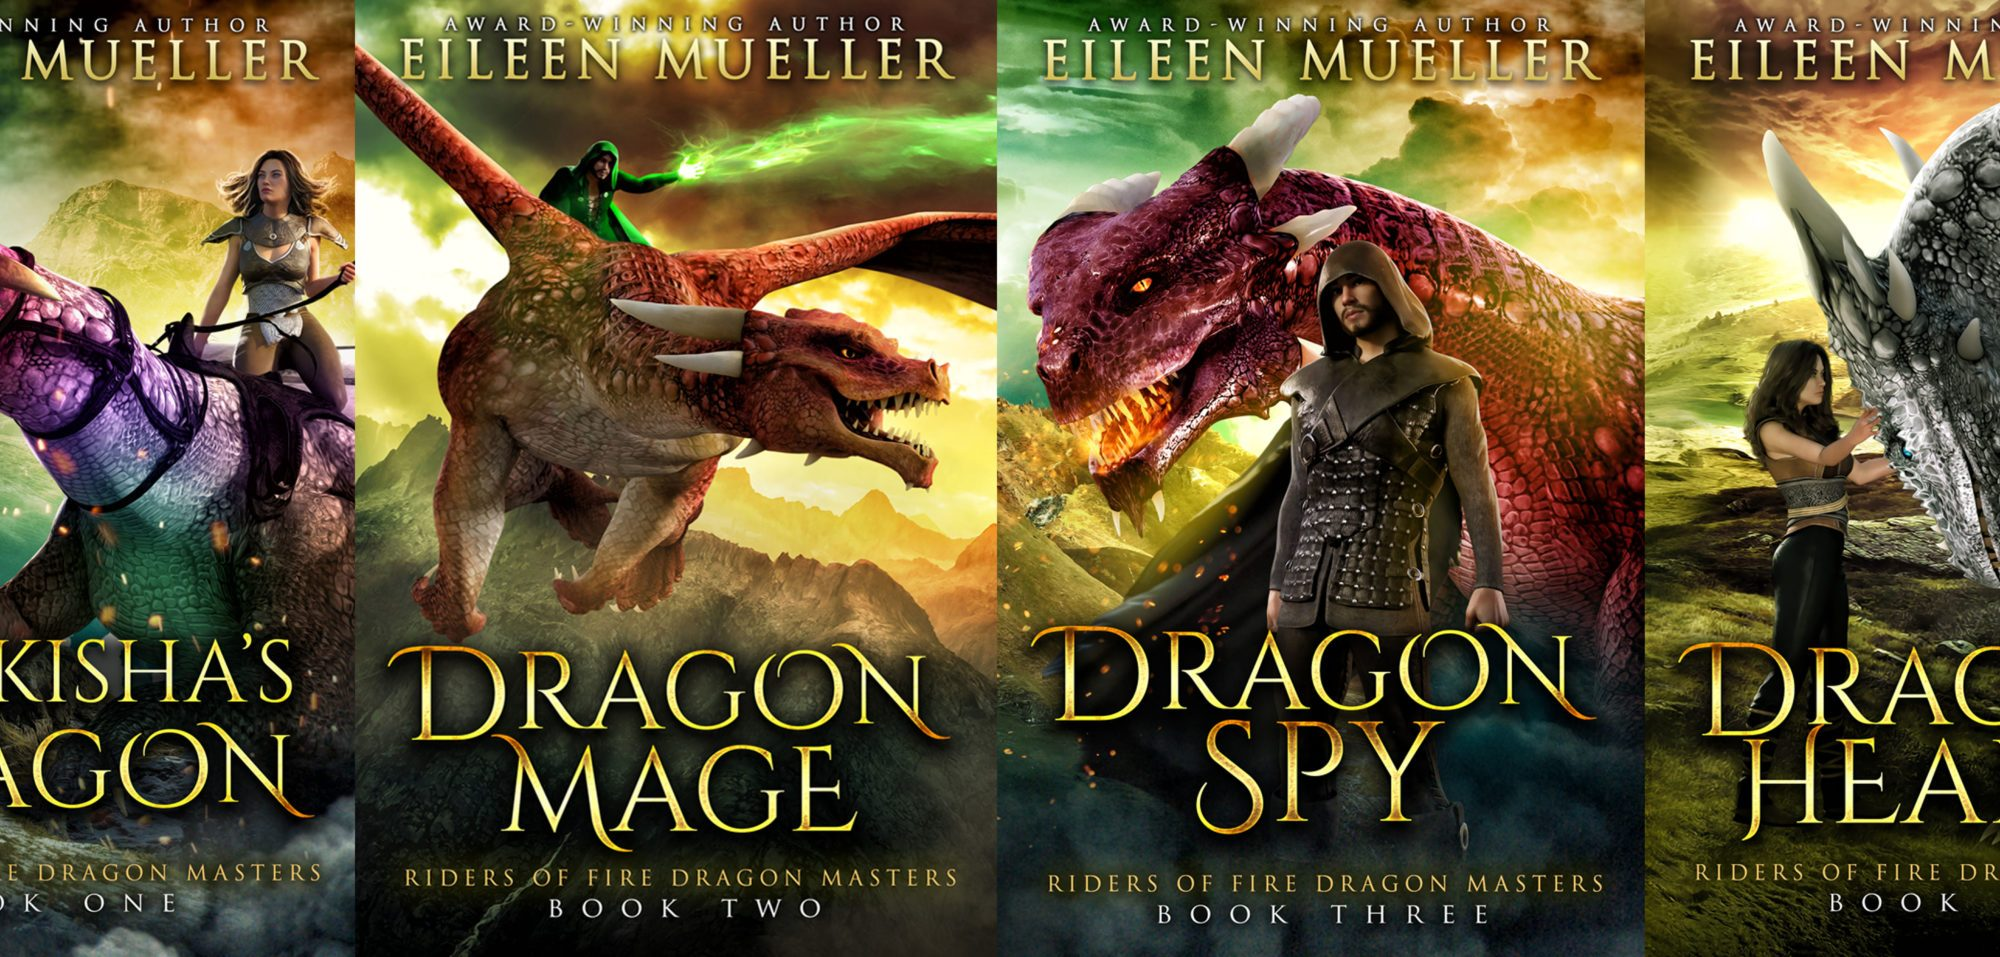 riders of Fire Dragon Masters series